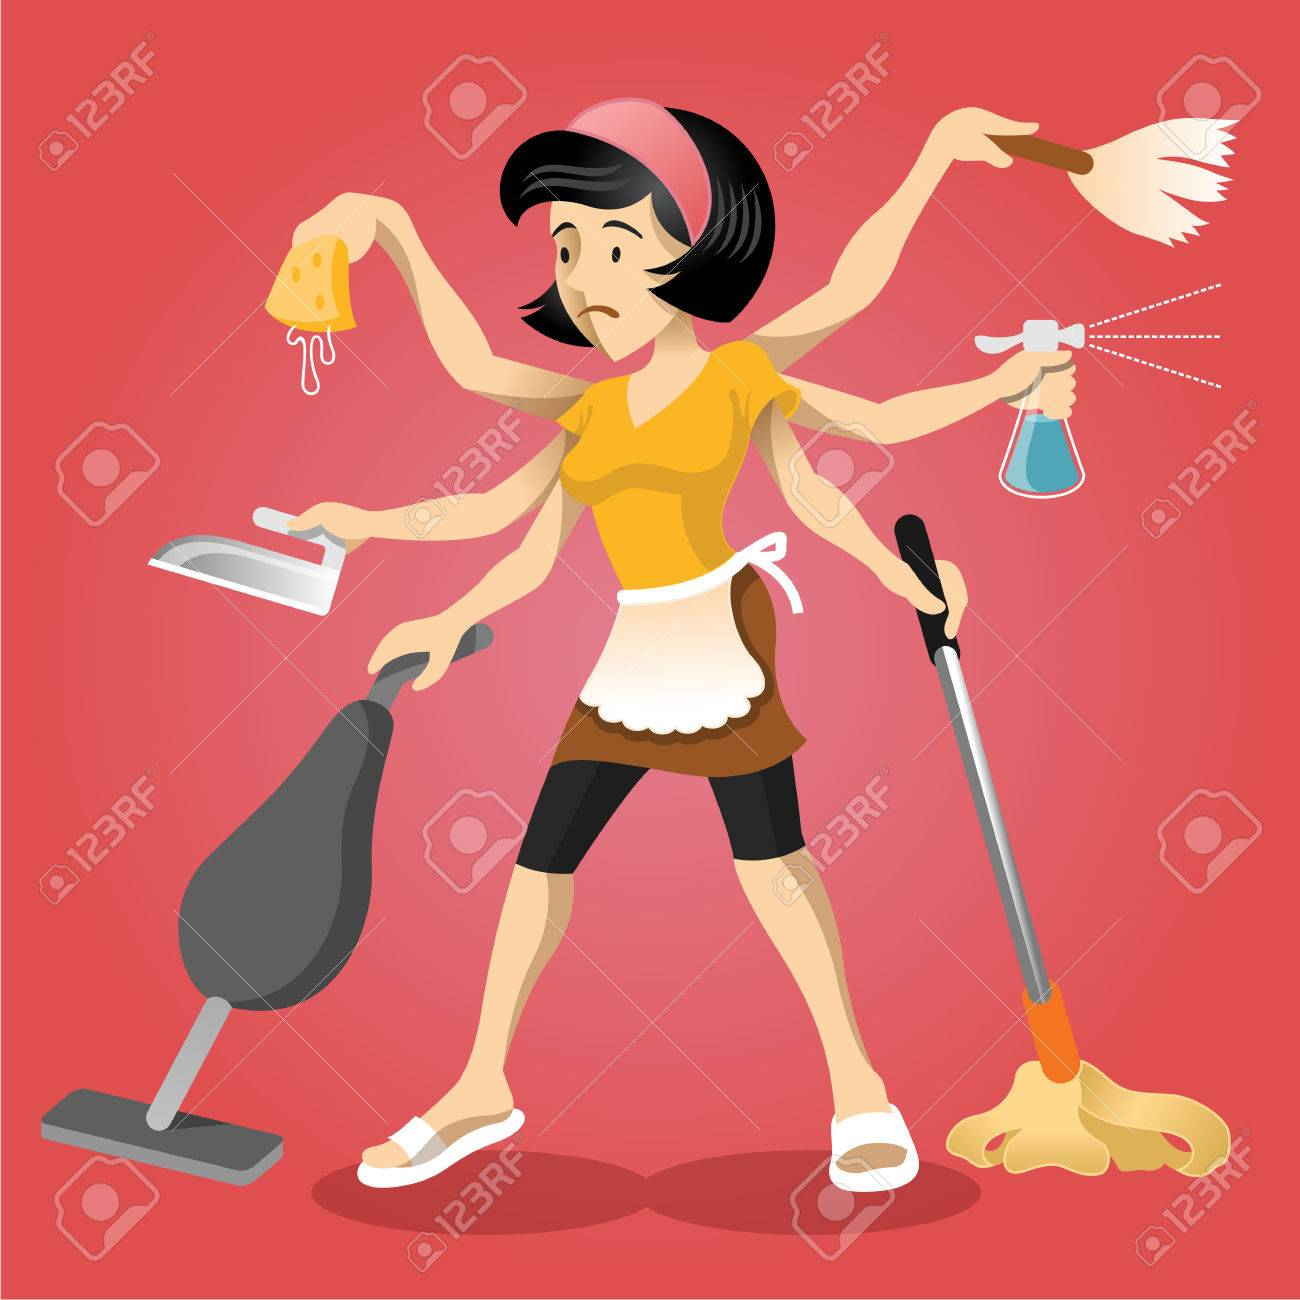 Housewife vector flat illustration - 36240820